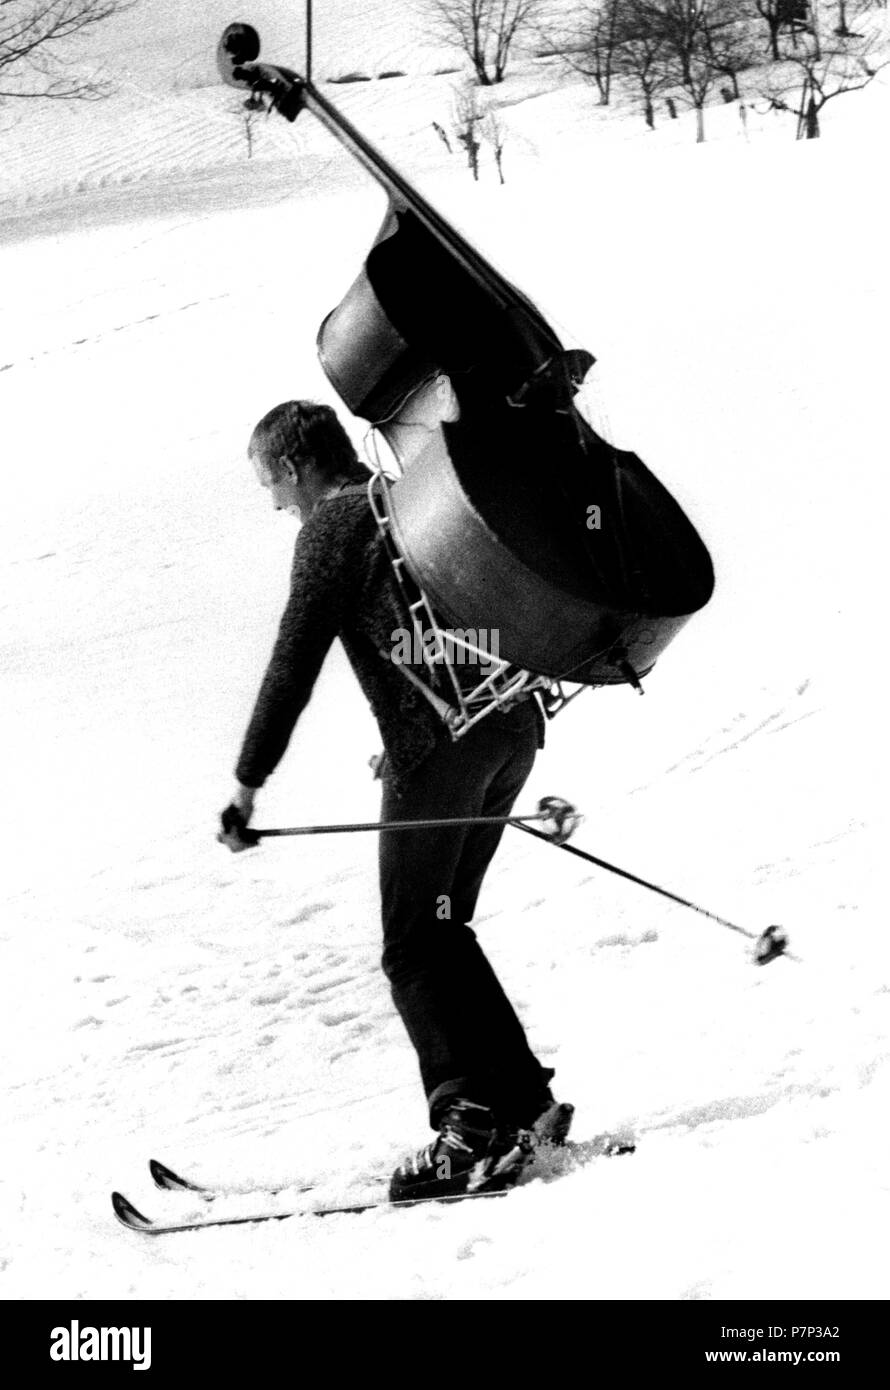 Man is skiing with bass ca. 1970s, exact place unknown, Czech Republic - Stock Image